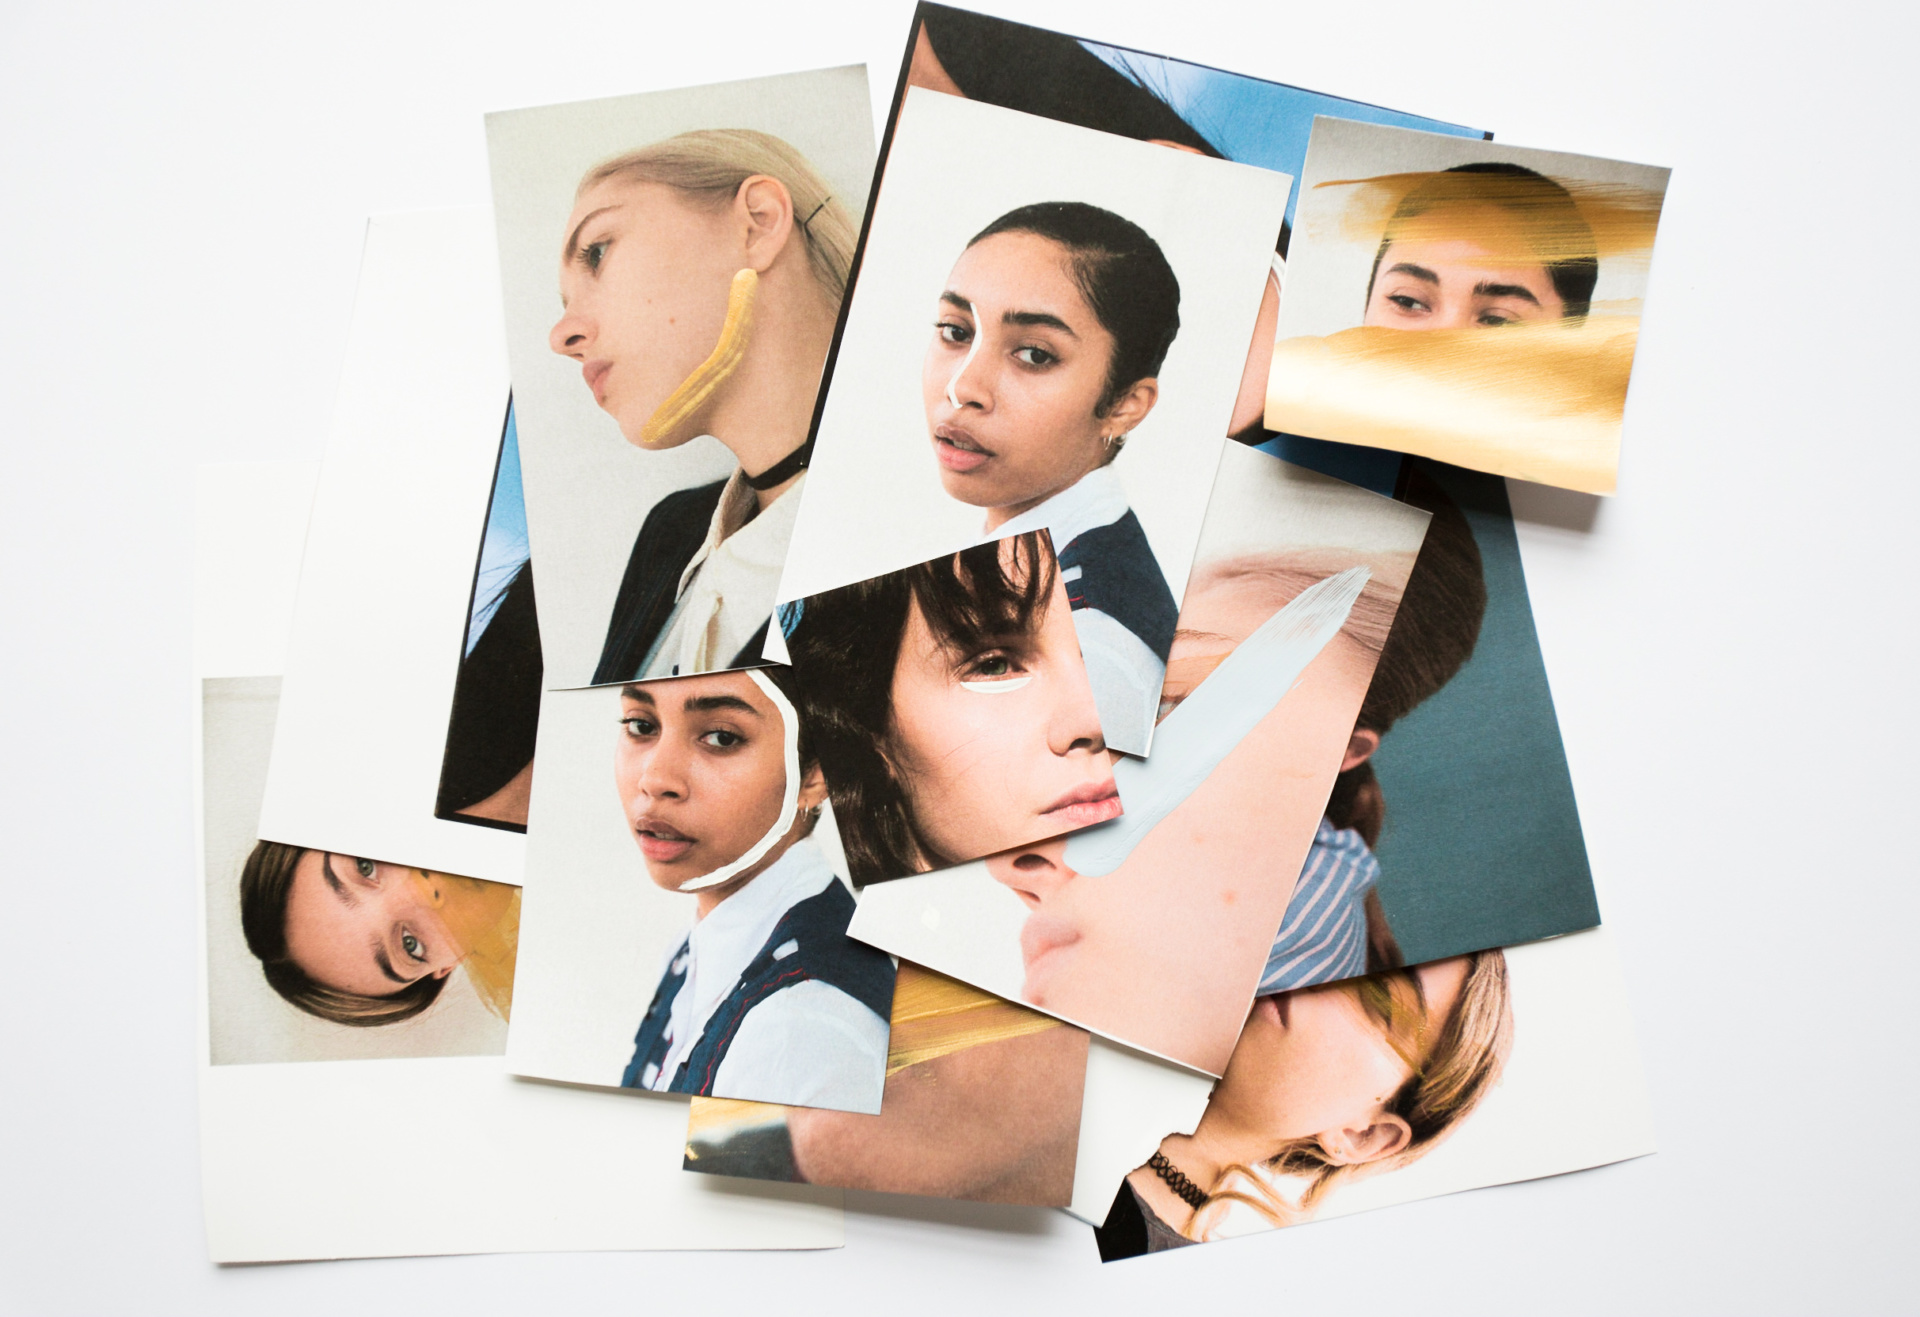 A pile of various photos of women's faces, designed as part of Harley Academy's brand identity. Graphic design by Barefaced Studios, Design Agency in Islington.